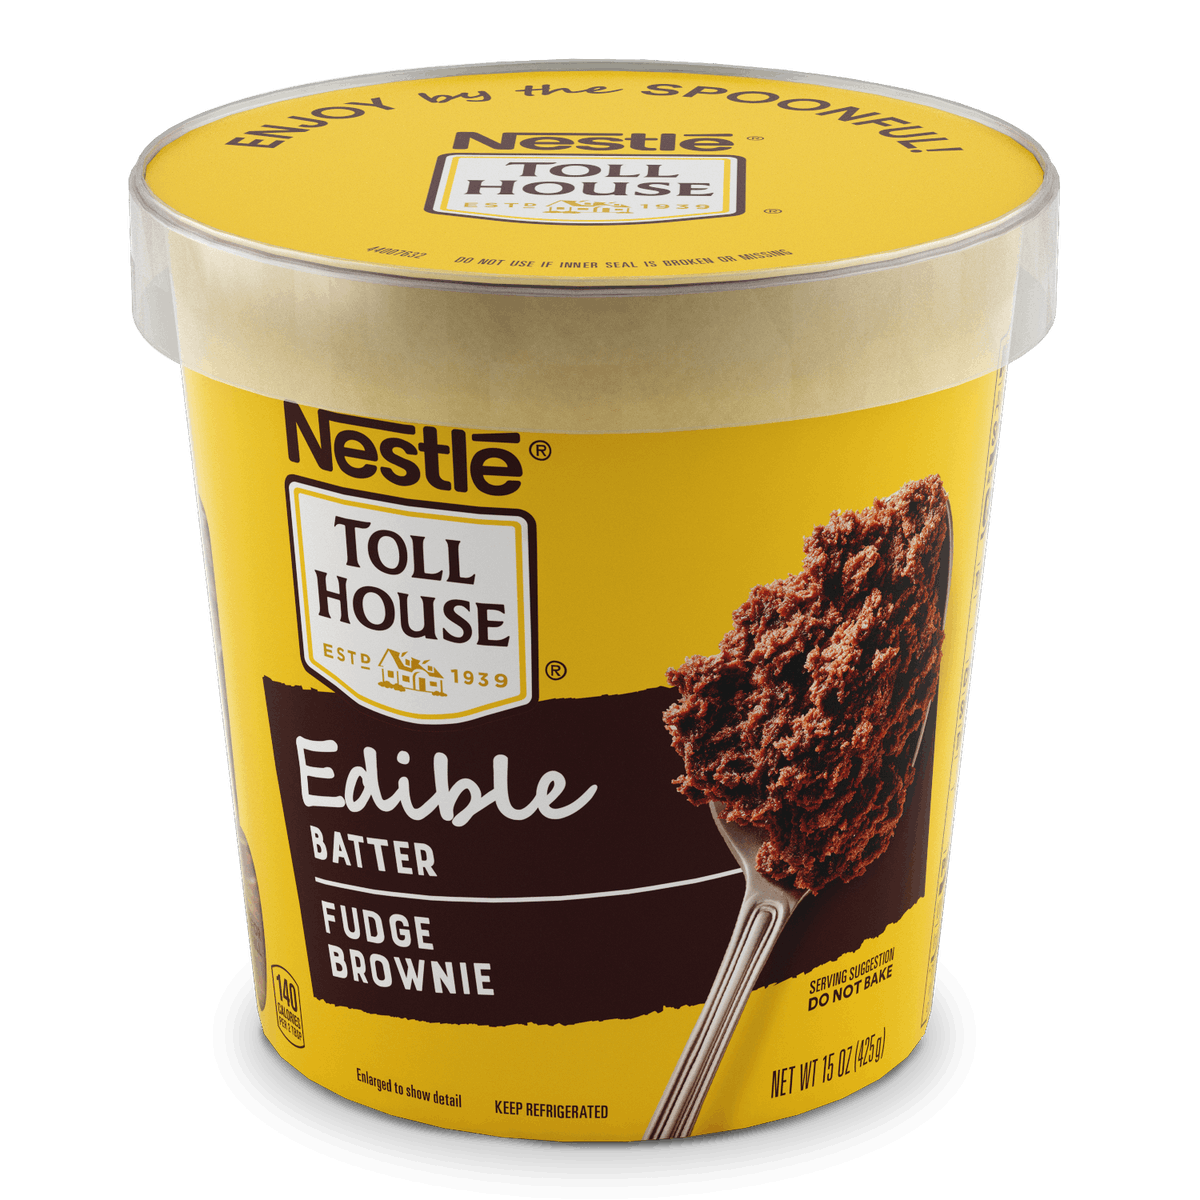 Nestlé Toll House's New Edible Cookie Dough Flavors include a fudge brownie batter offering.